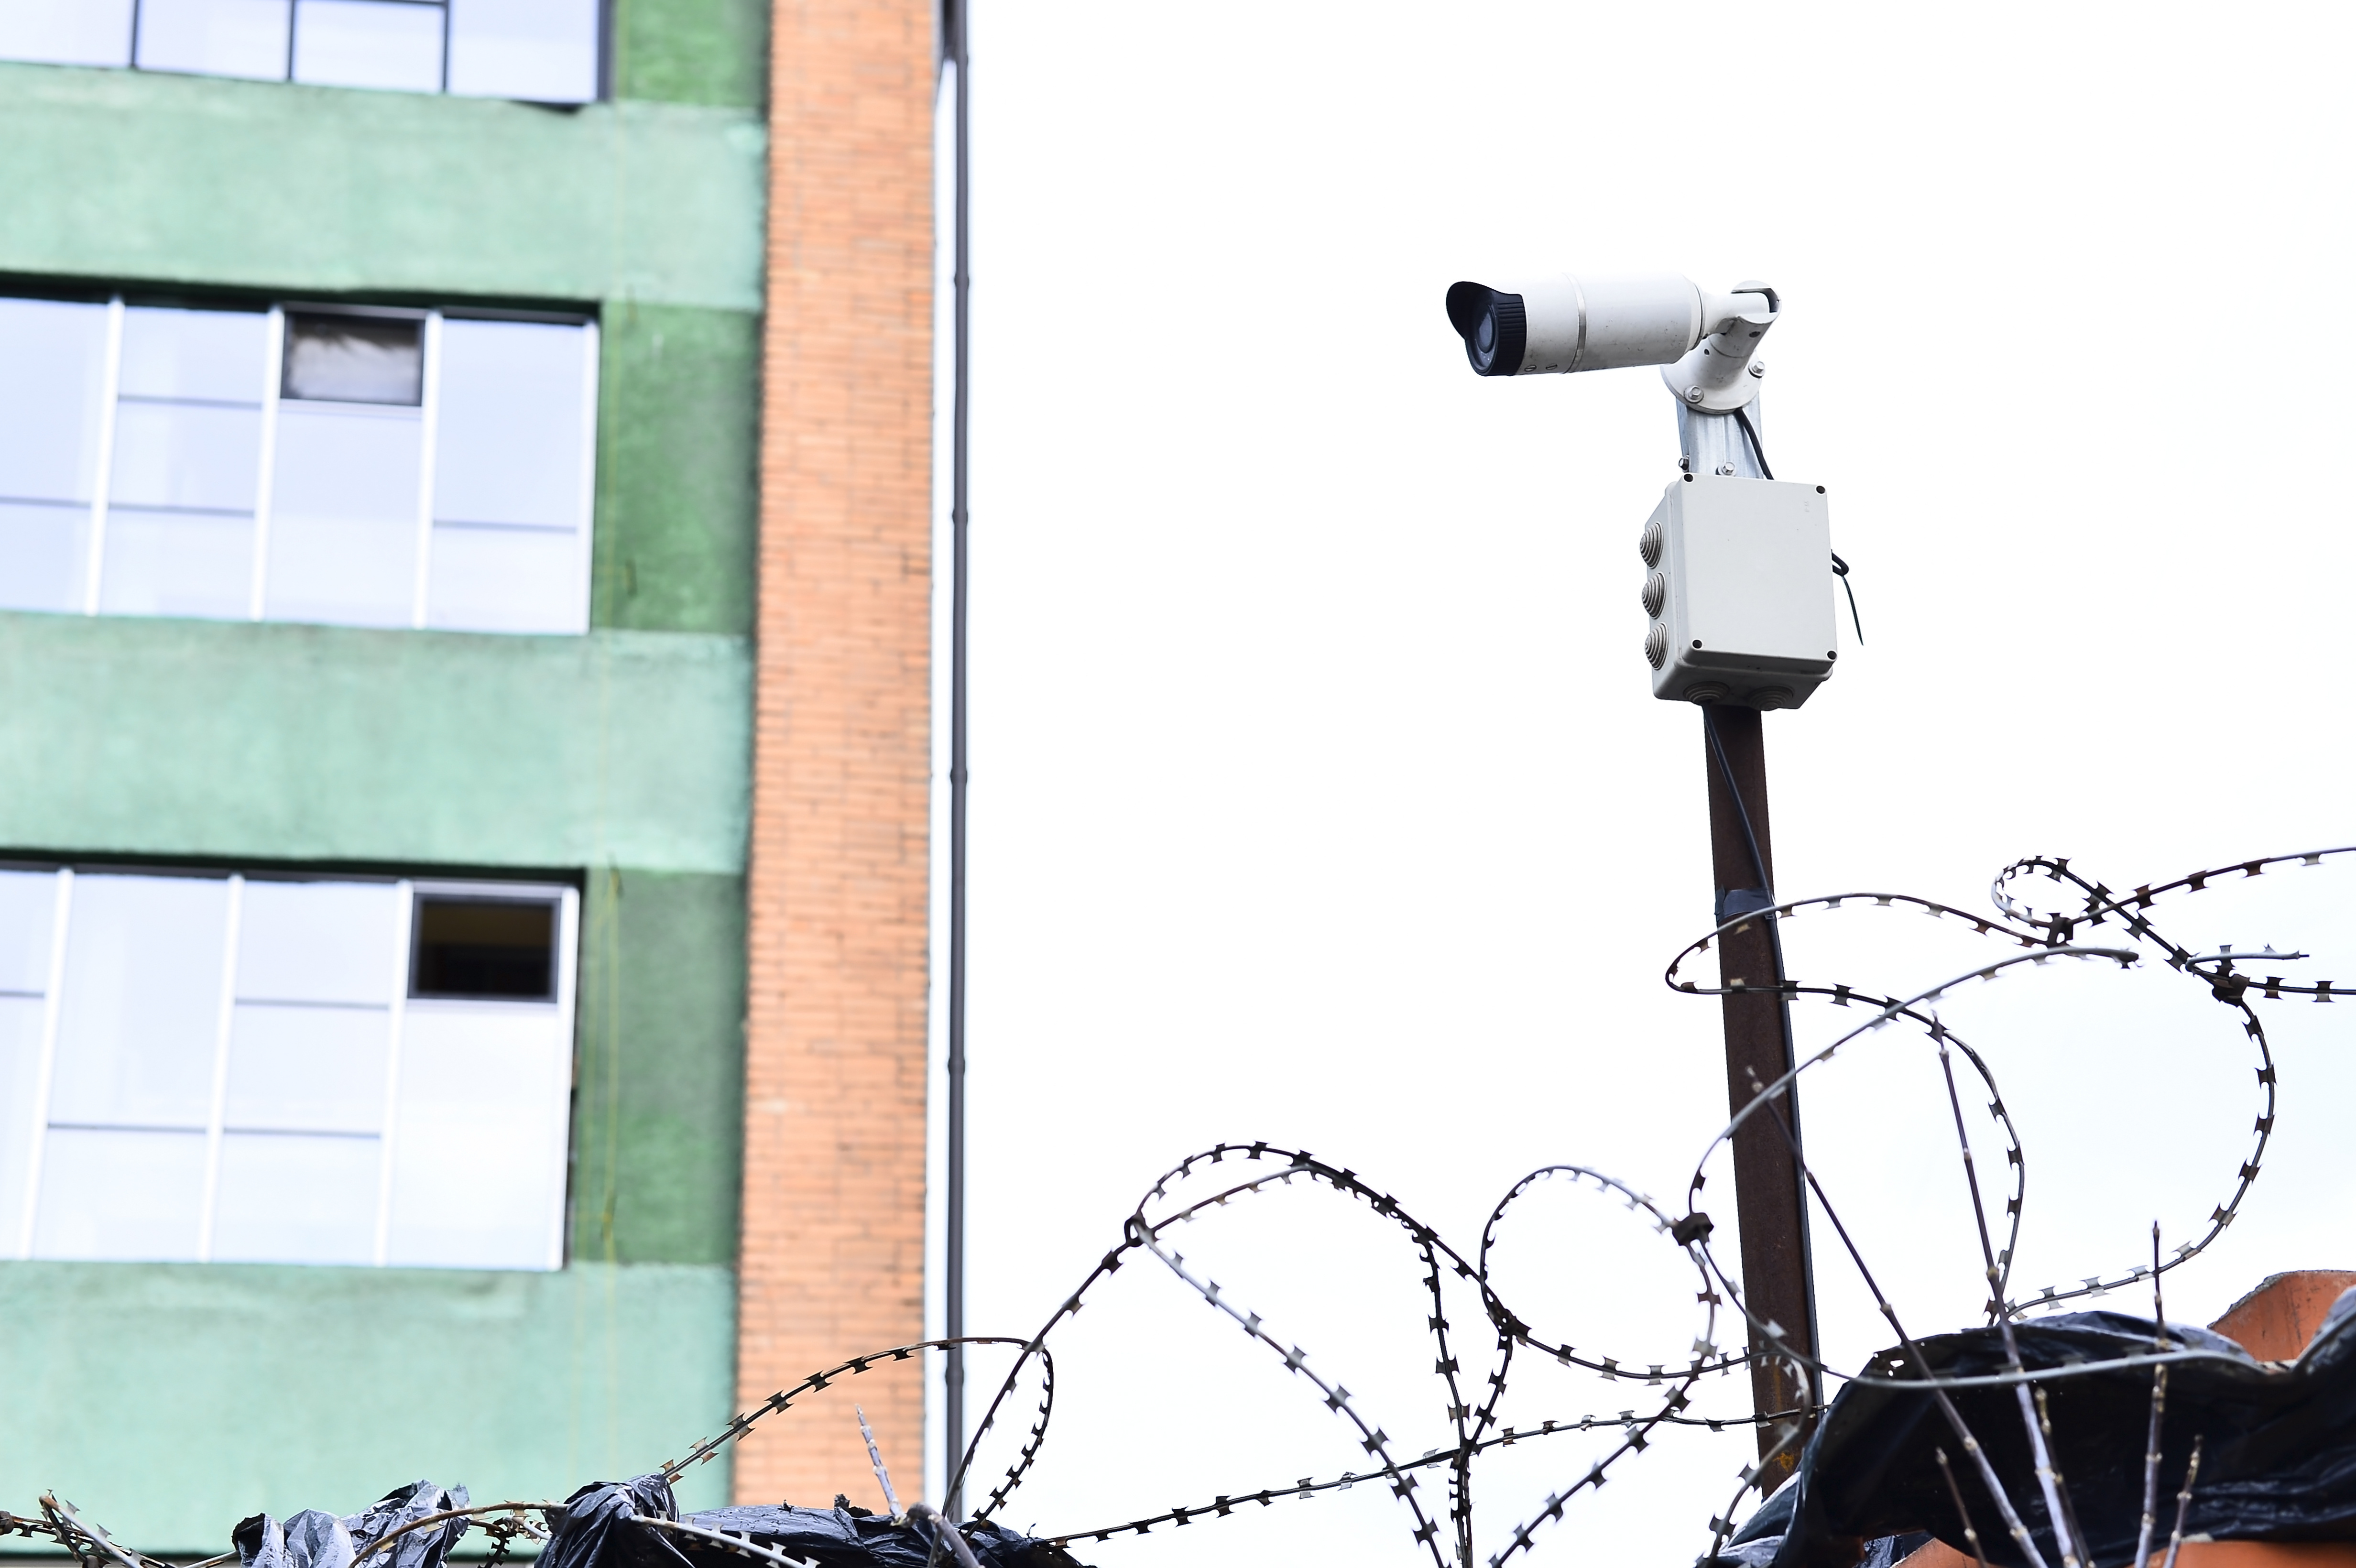 Camera video surveillance on the building background mounted on a brick wall, fenced with barbed wire.